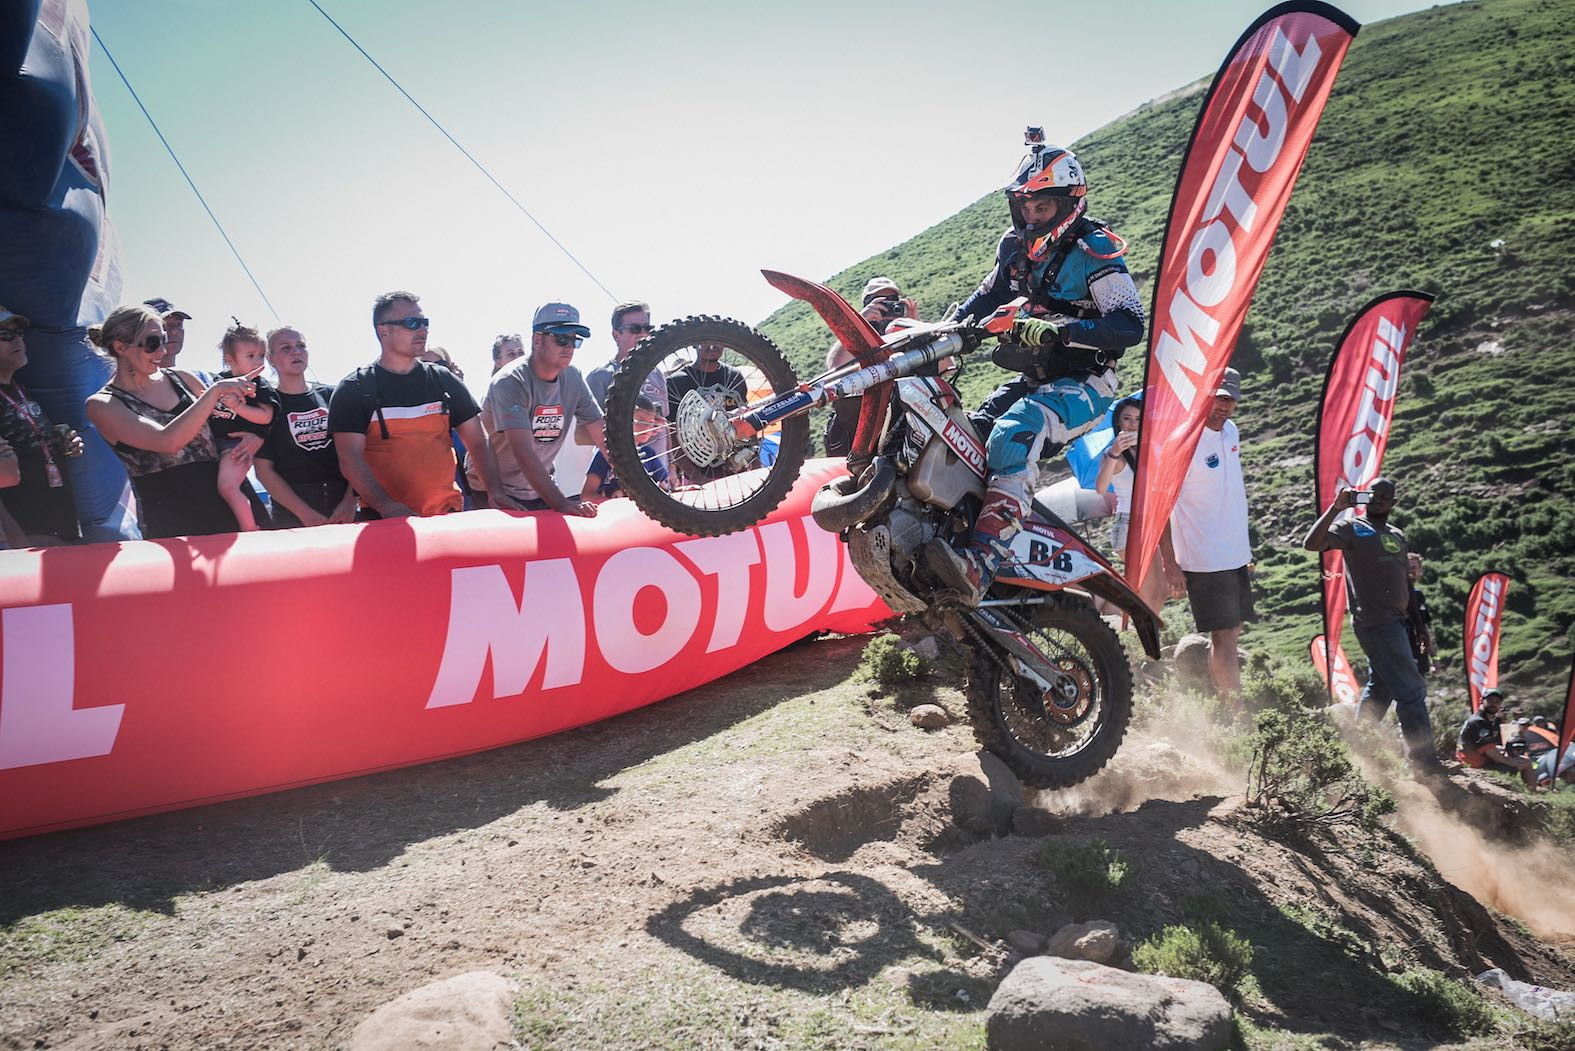 The Motul Roof of Africa is the final round of the 2017 Red Bull Hard Enduro Series